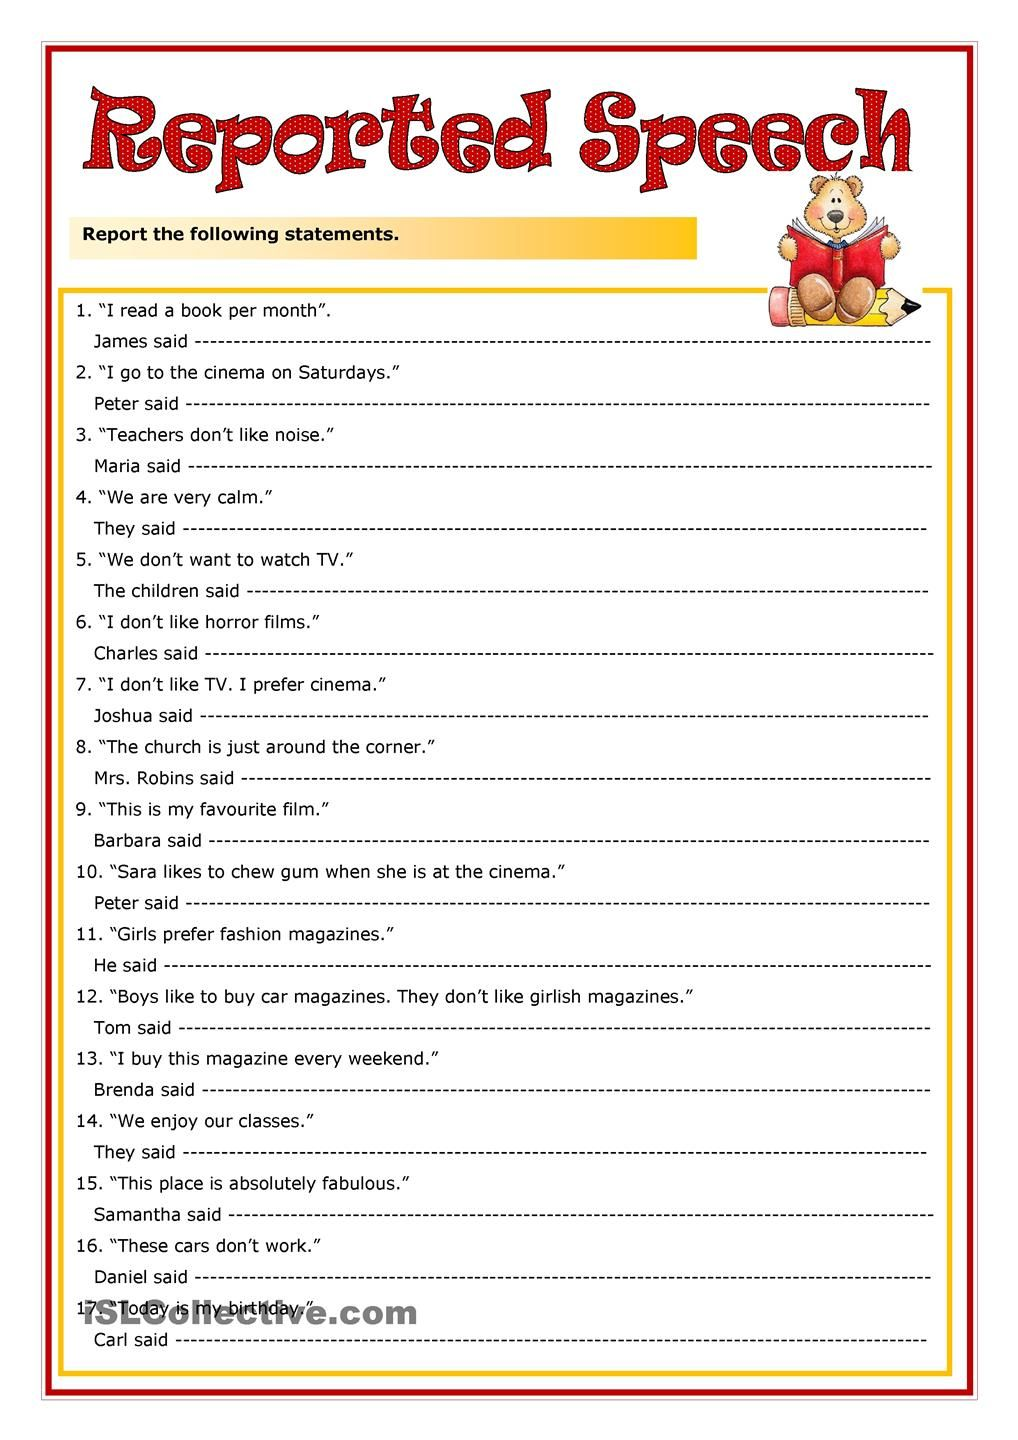 Reported speech statements exercises pdf